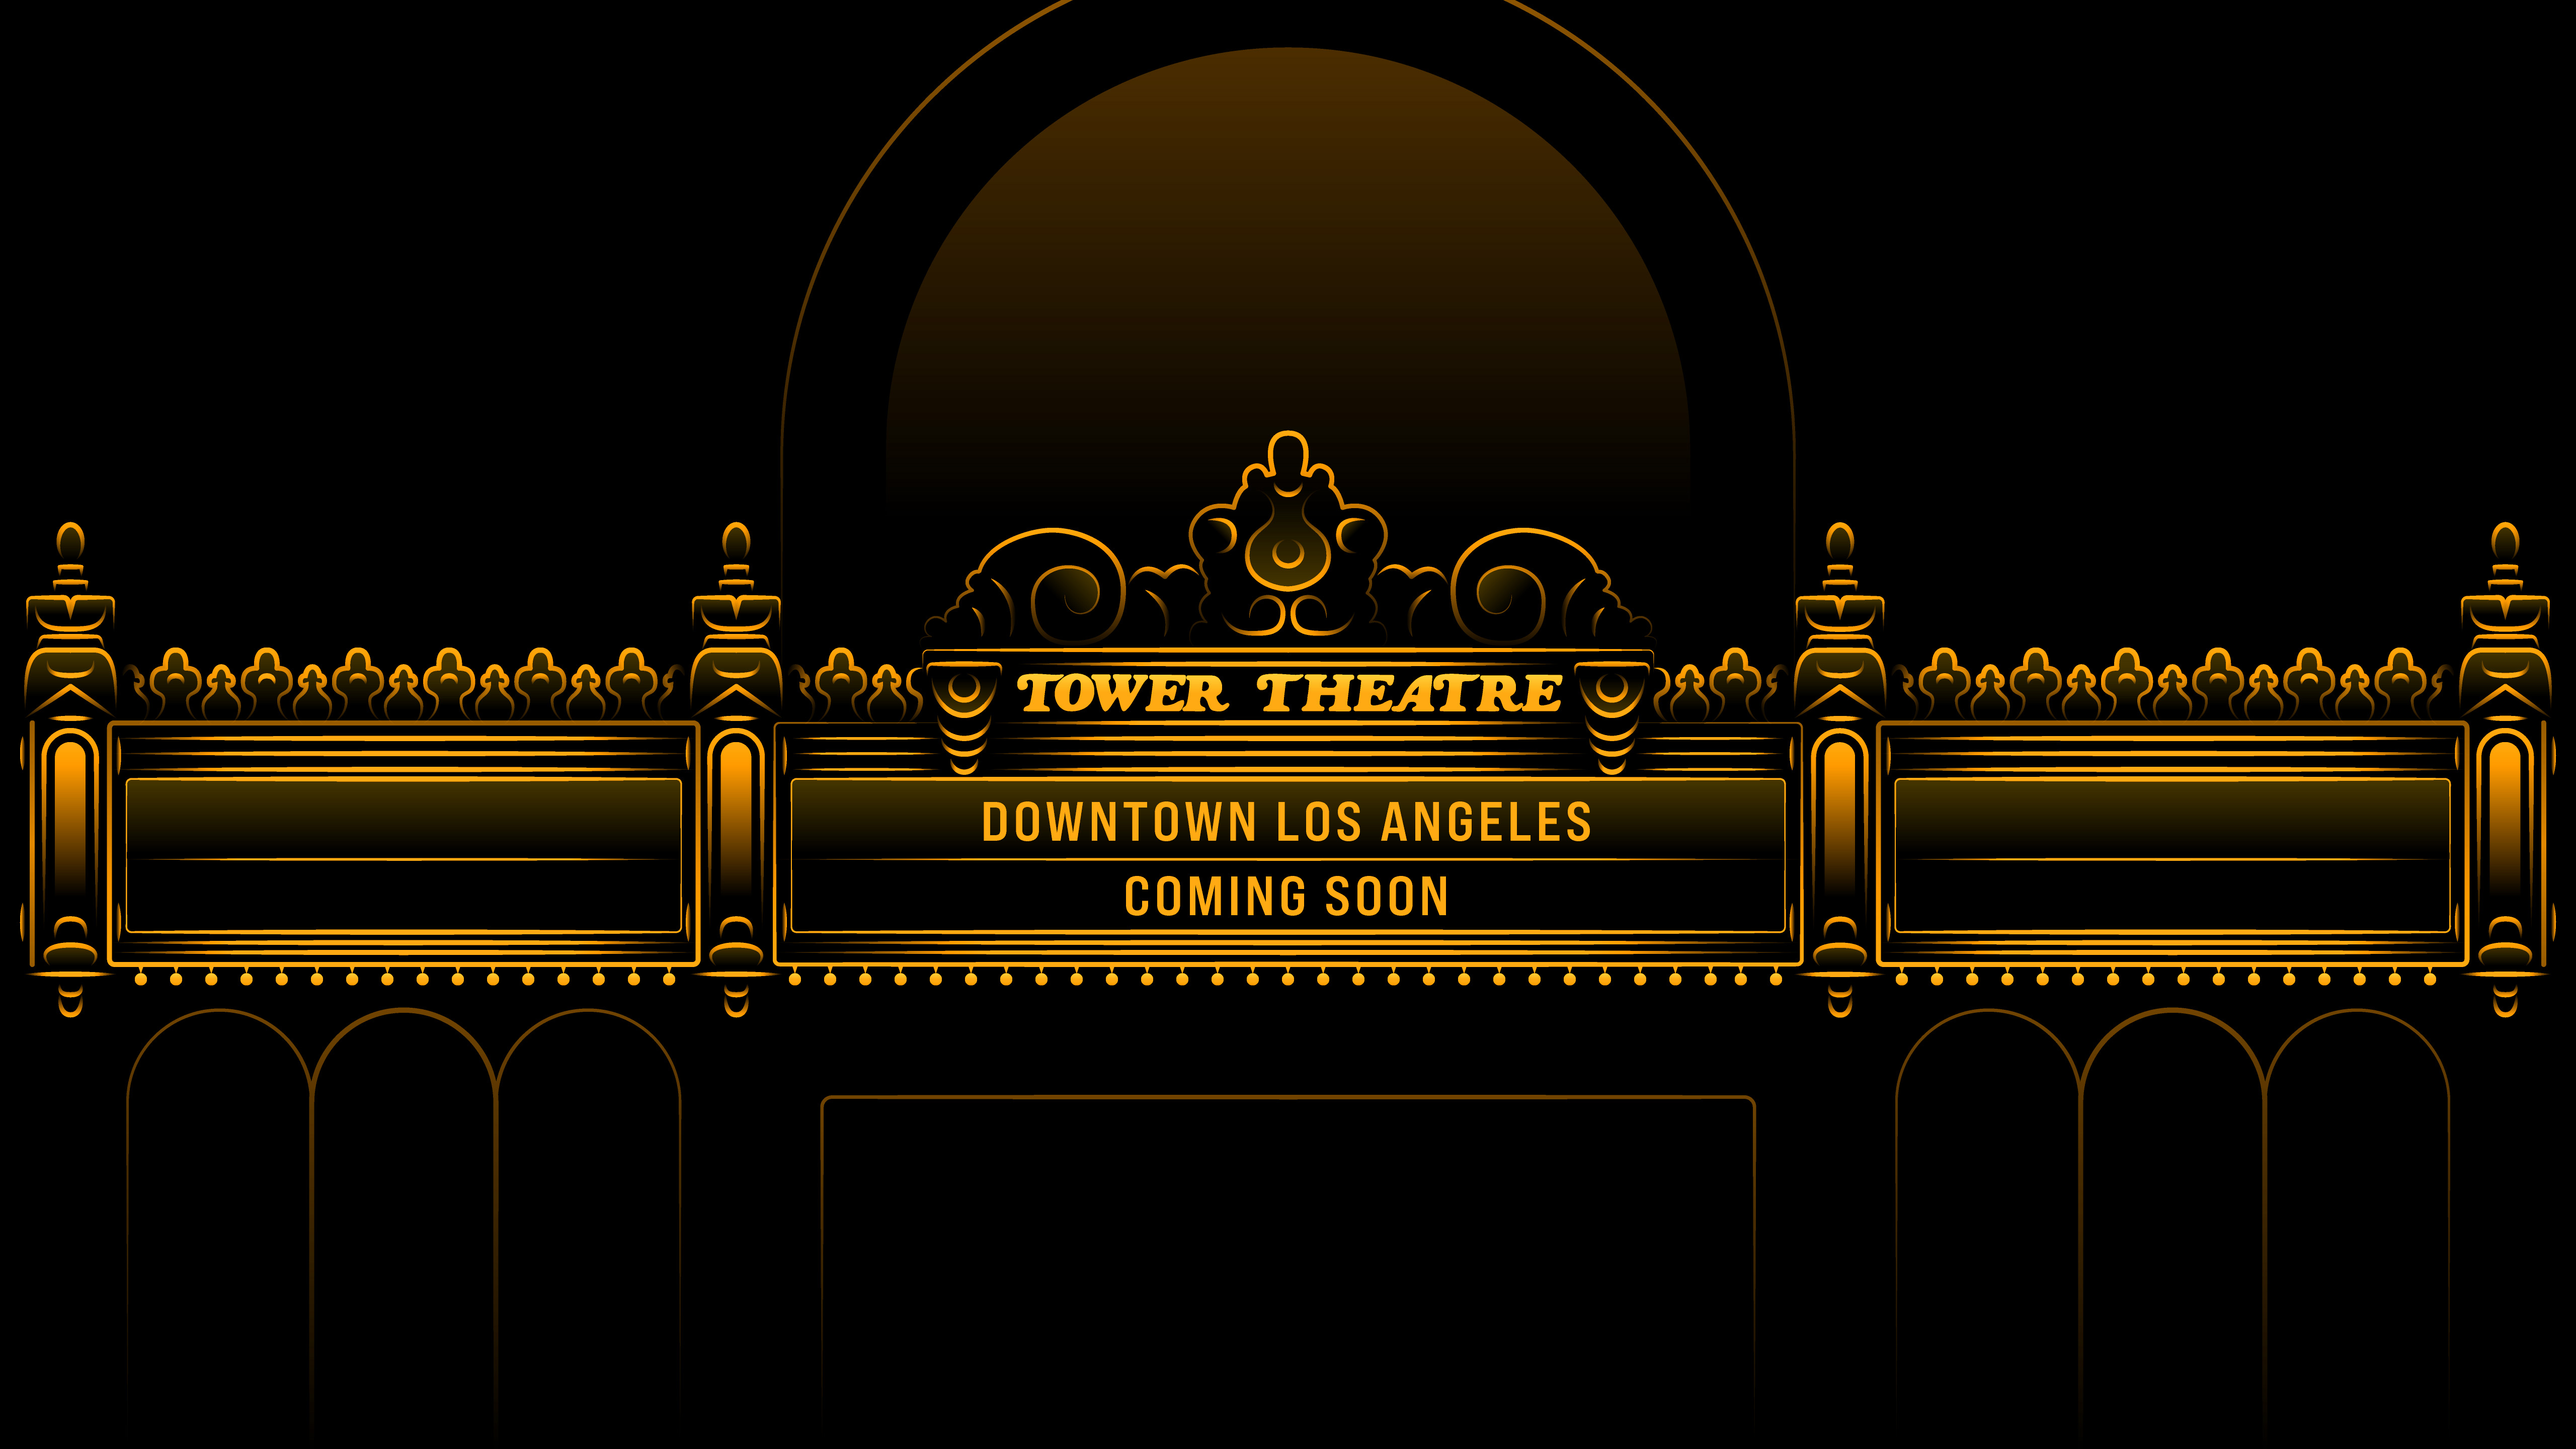 Apple Tower Theatre Marquee with text